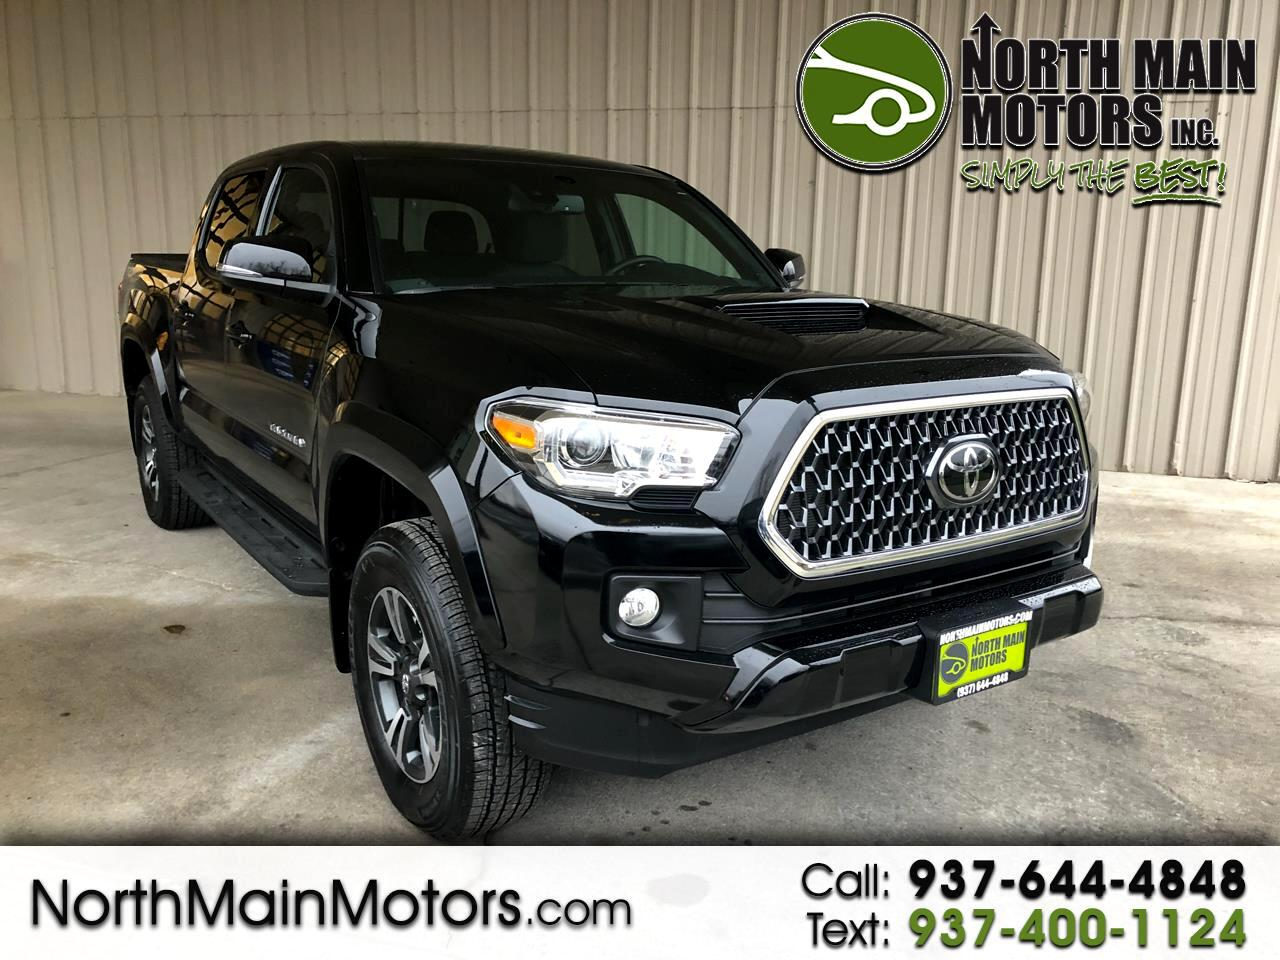 2018 Toyota Tacoma TRD Sport Double Cab 5' Bed V6 4x4 AT (Natl)